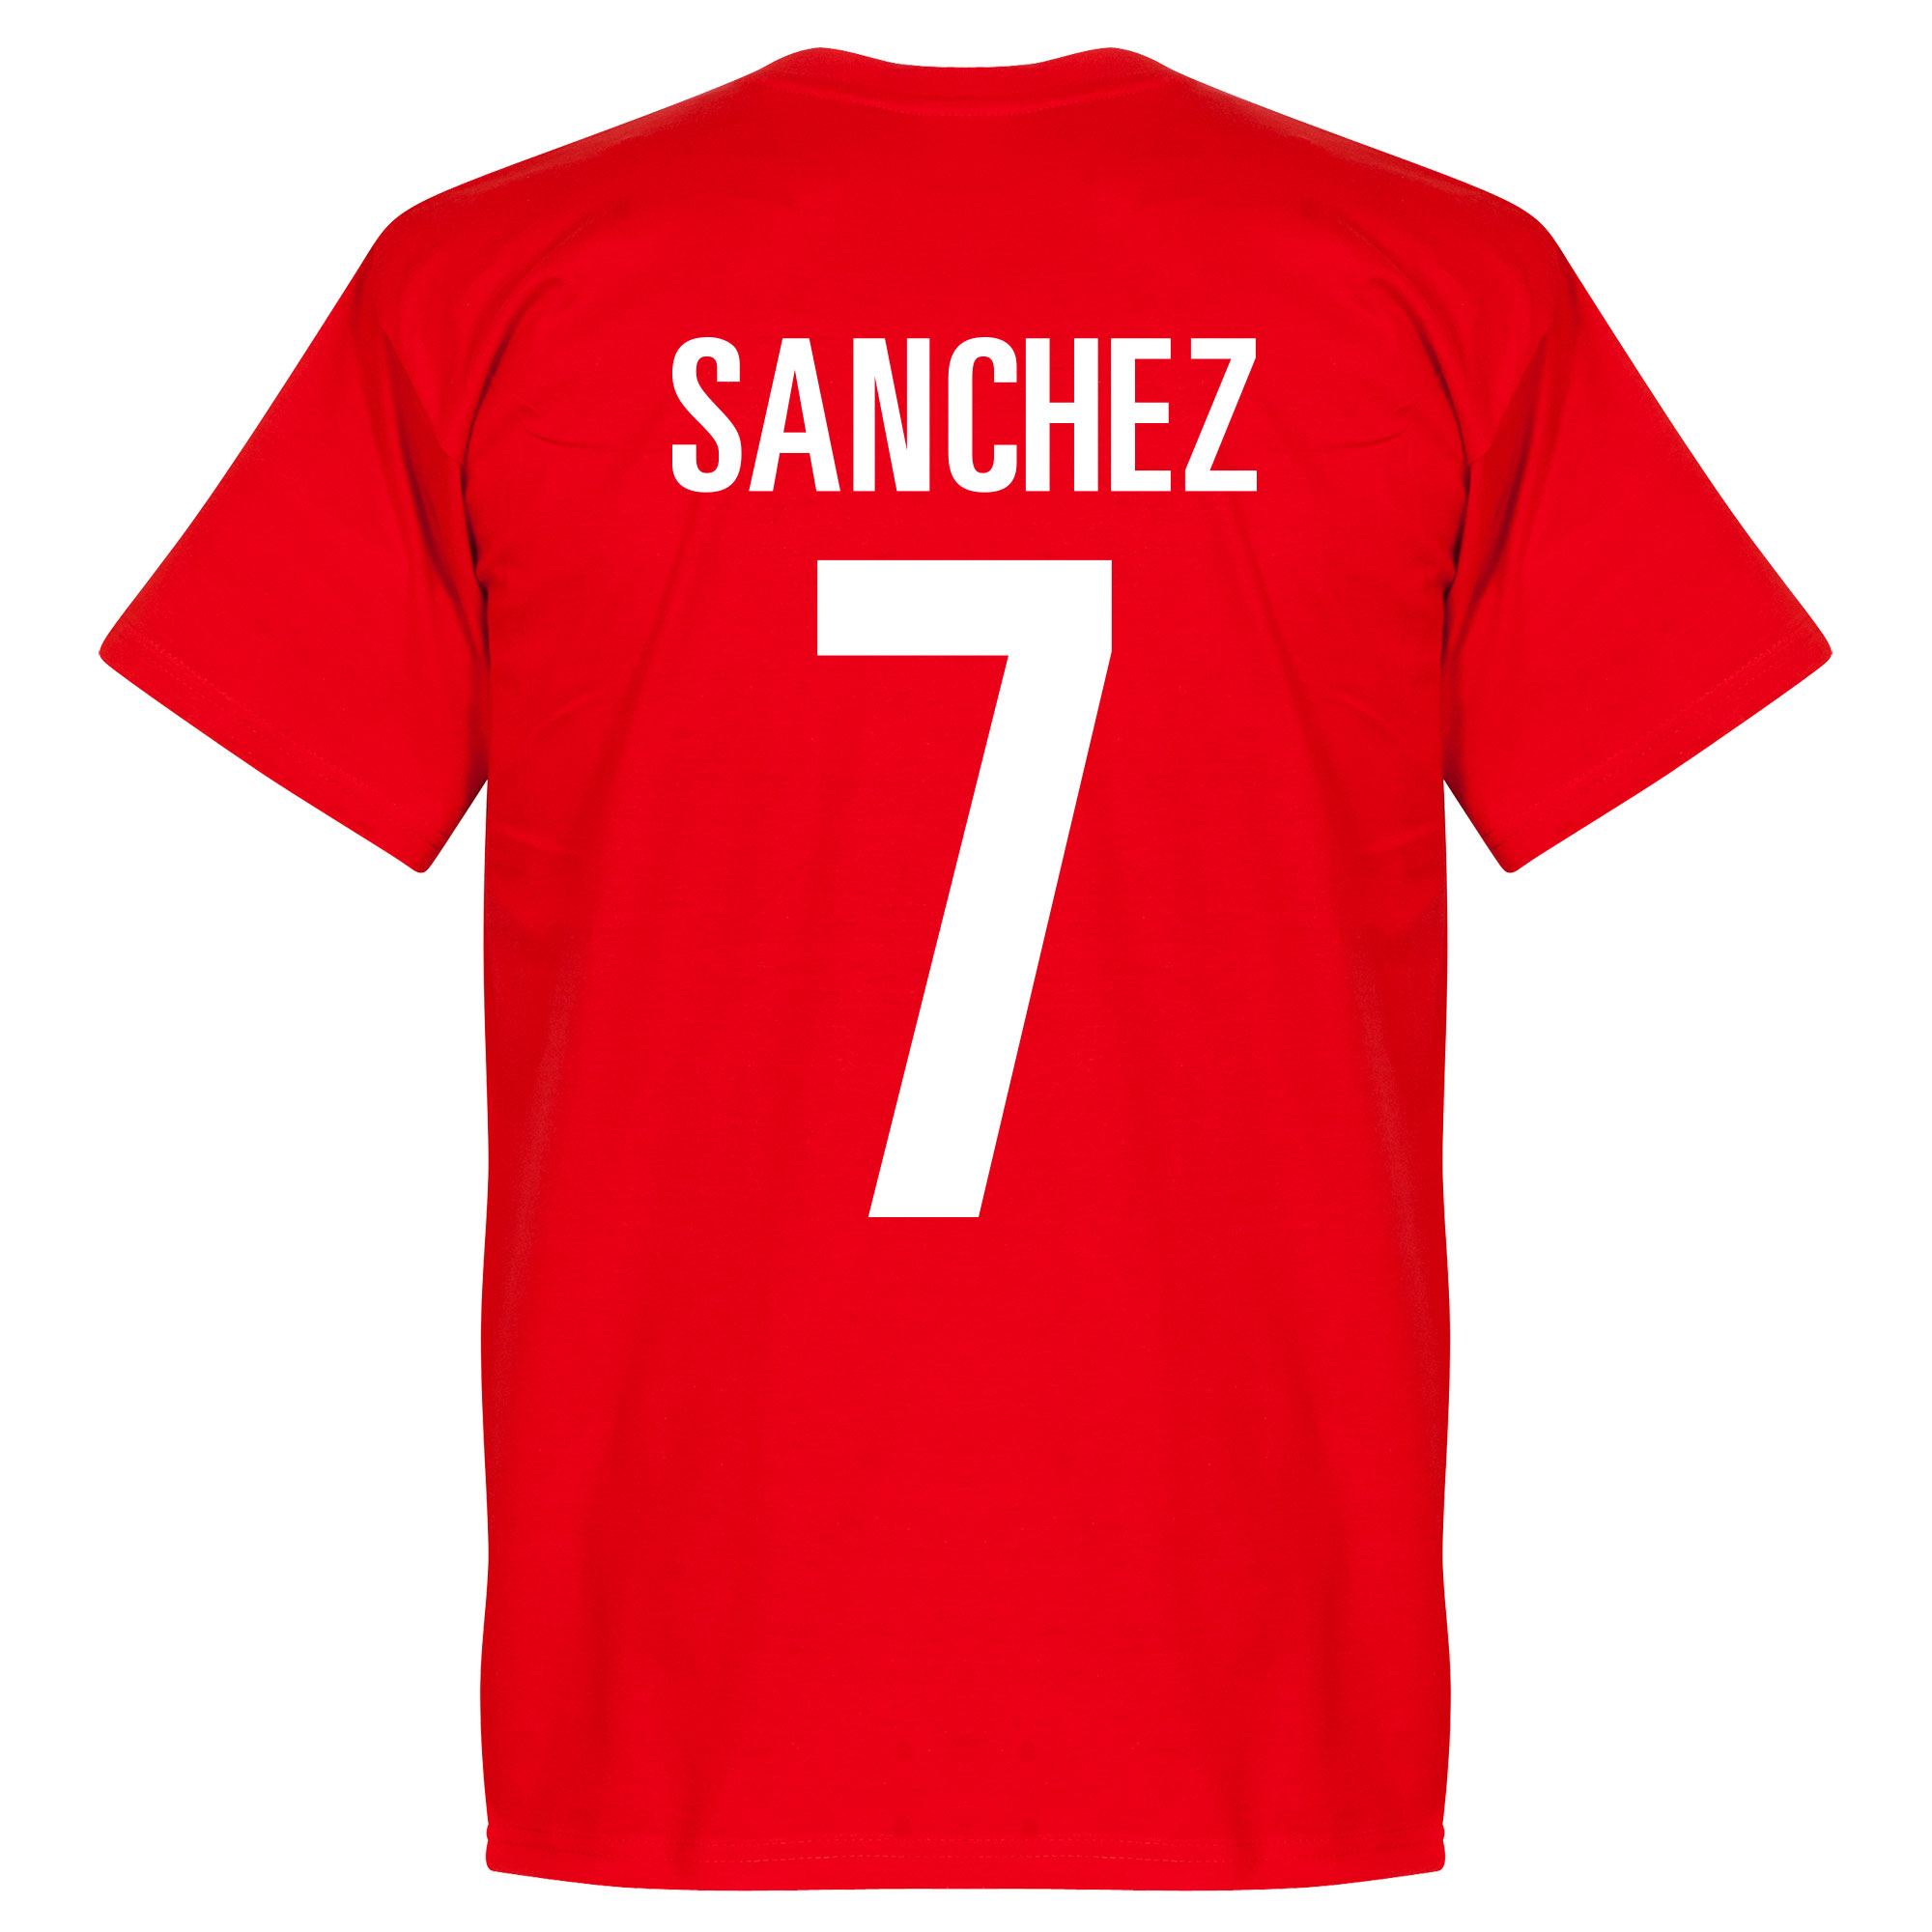 Chile Sanchez Tee - Red - L